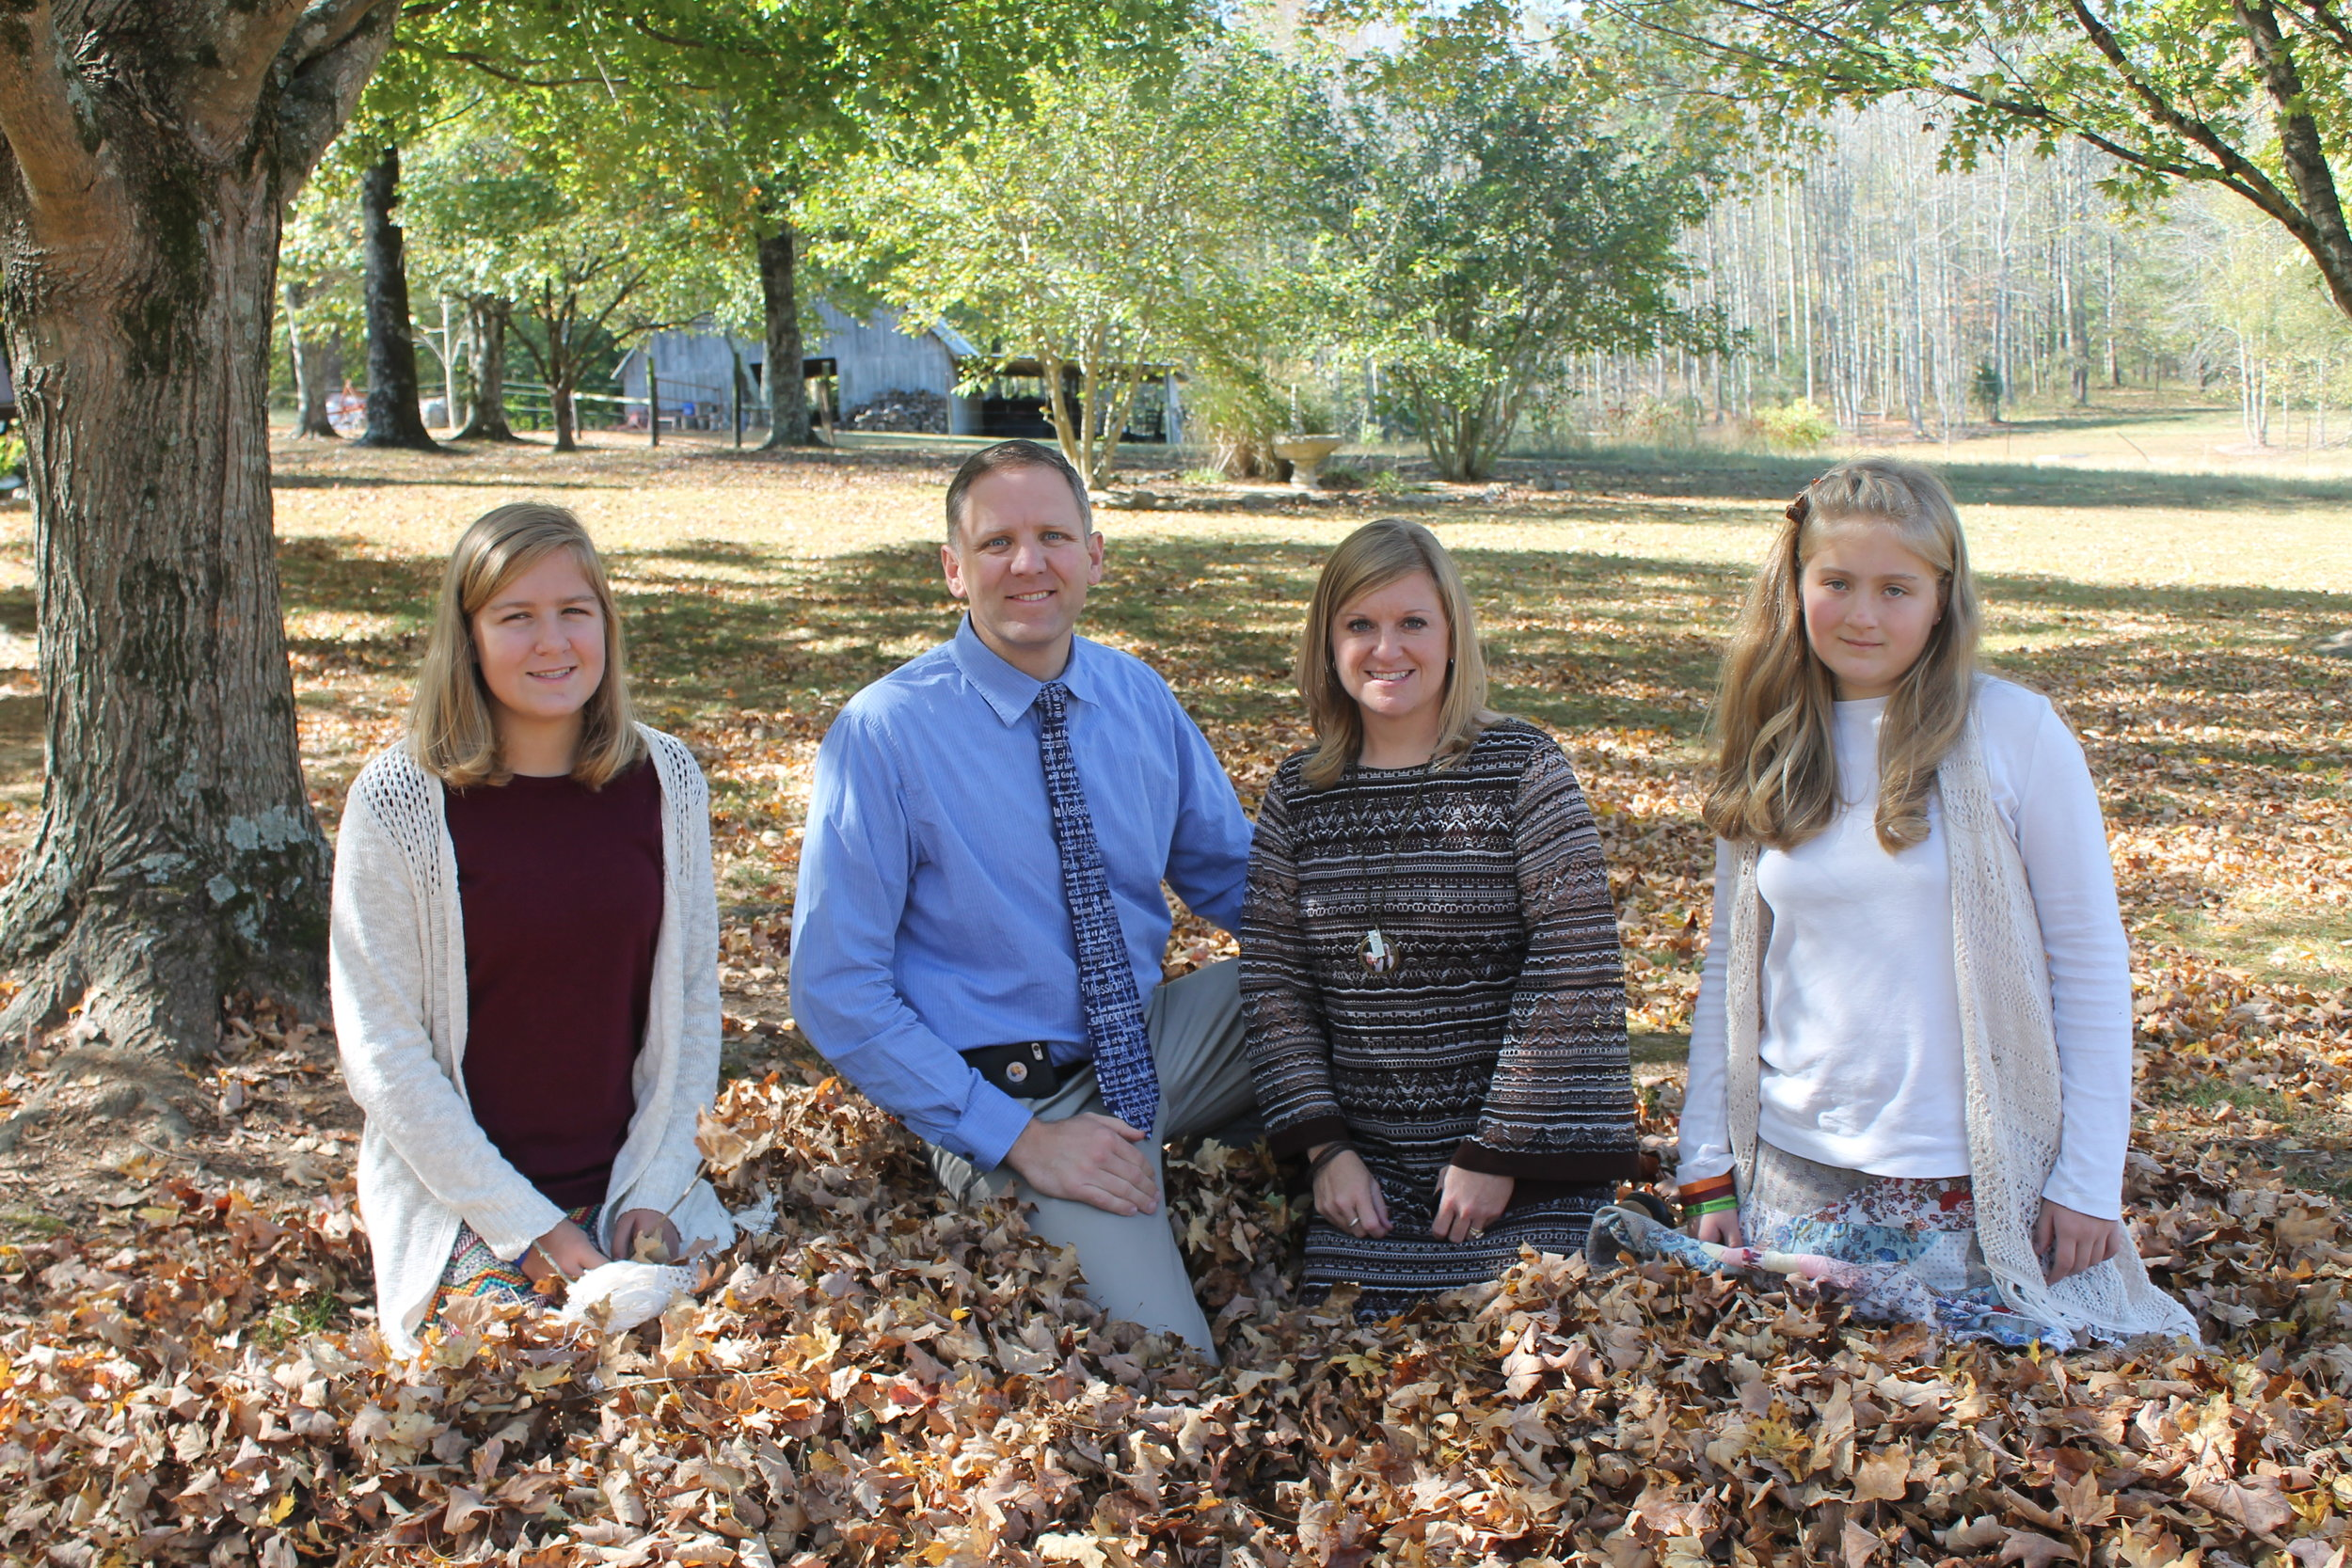 Michael & Michael Cagle, Madison, Maci, help lead our youth ministry.